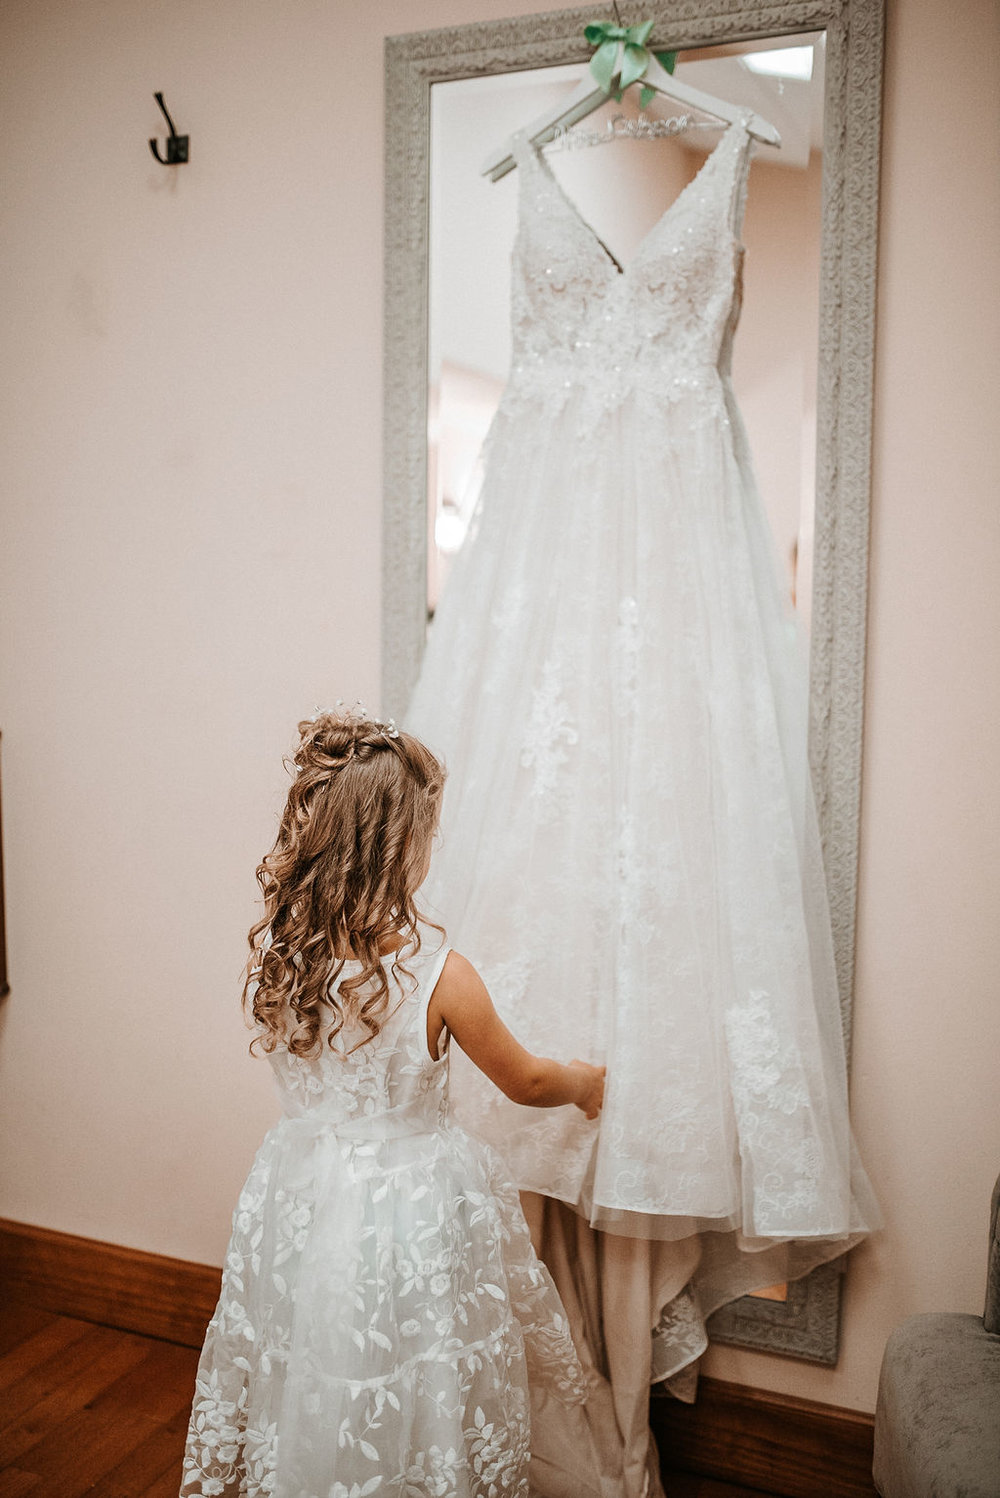 Flower girl looking at wedding dress at The Woodlands at Algonkian